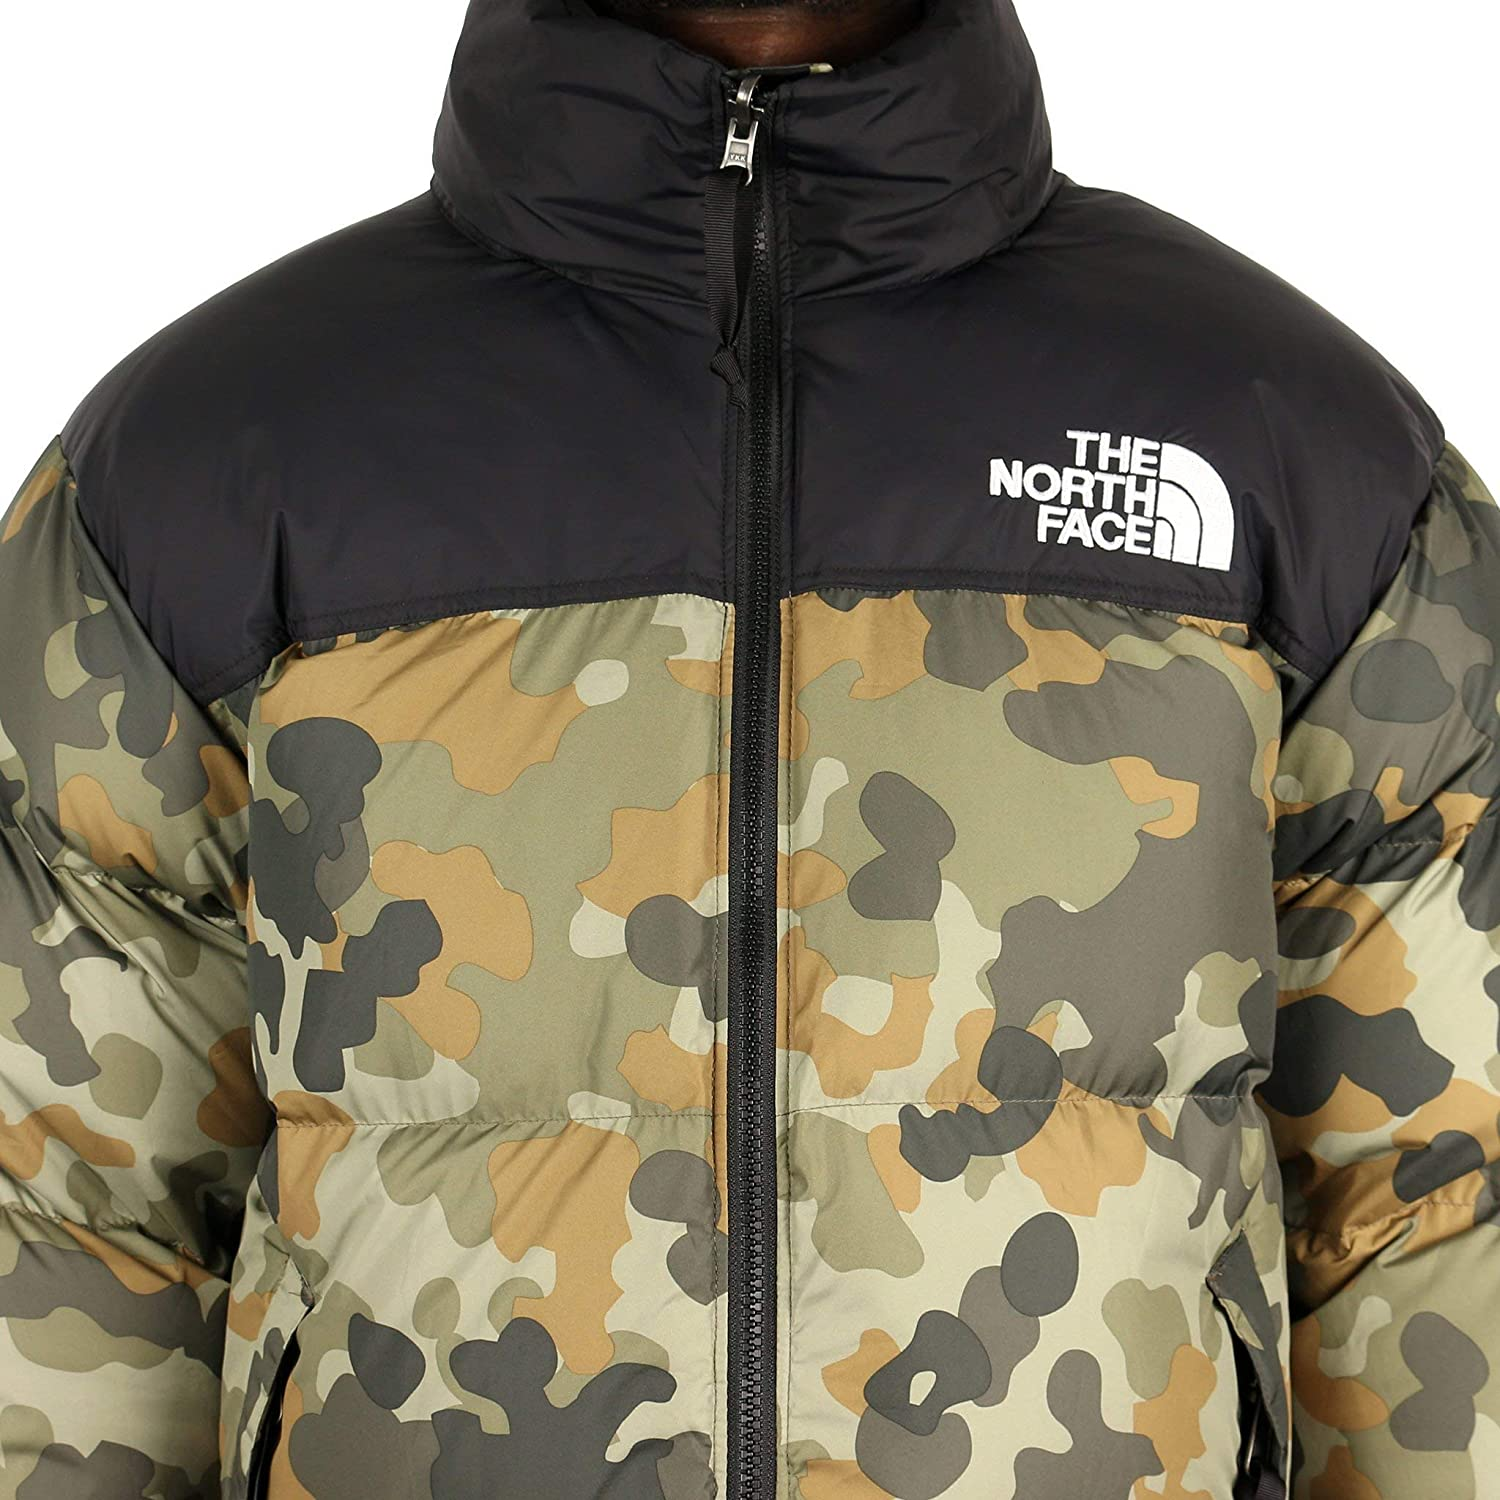 : The North Face Men's Clothing T93MIX5XP M1996